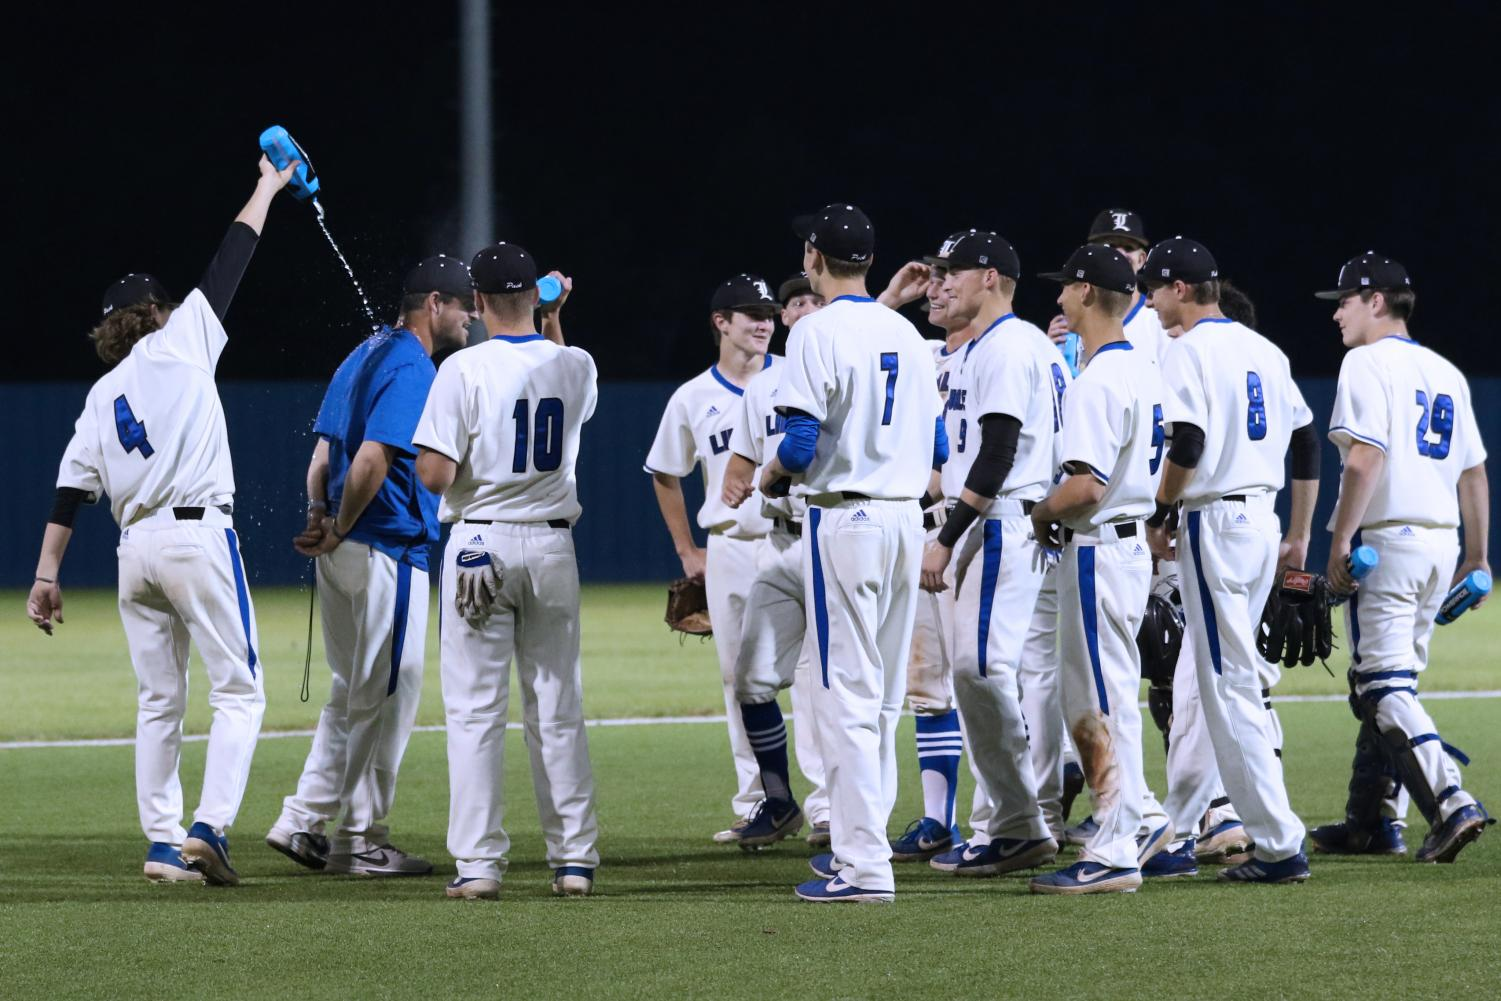 The varsity baseball celebrates their home win over Greenville, and they were officially named the district champions following this game. Head coach Rich Sanguinetti is the district's Coach of the Year, and several players also received district awards.